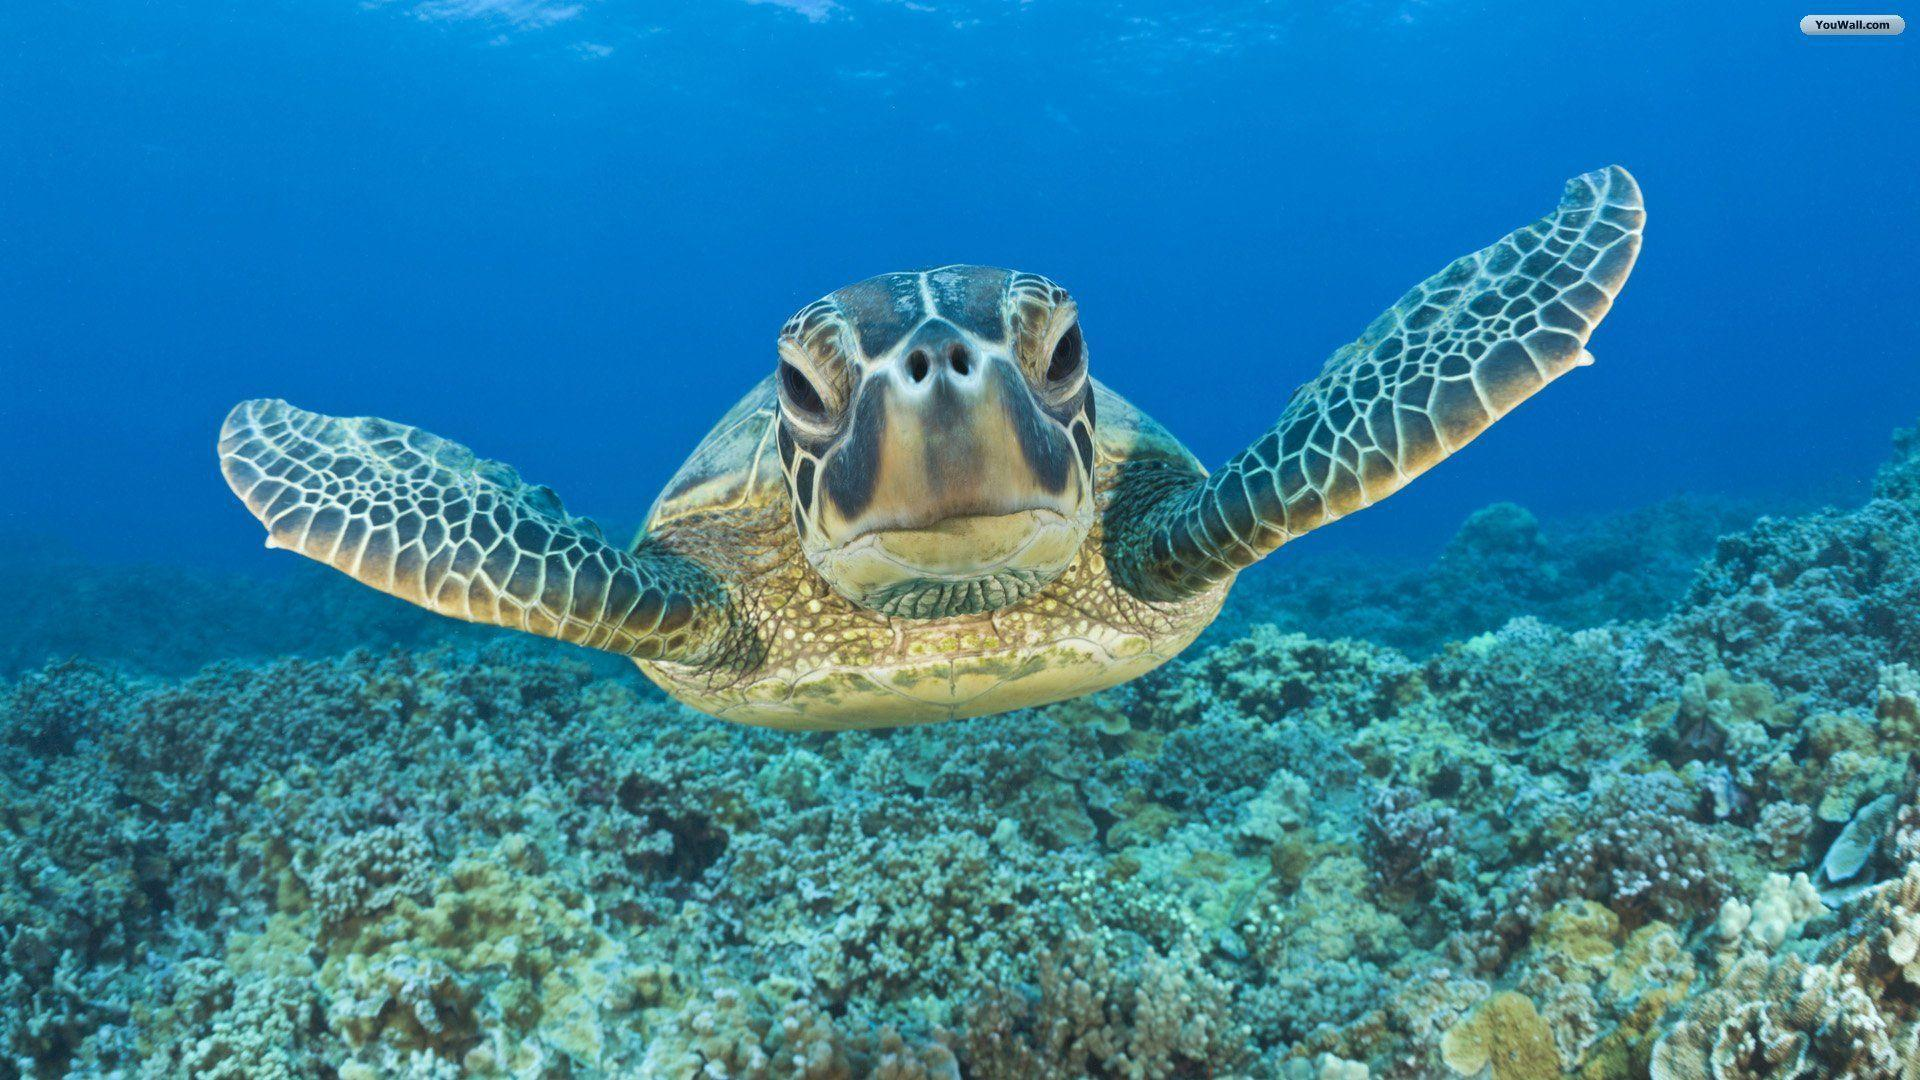 Animal Underwater Turtle